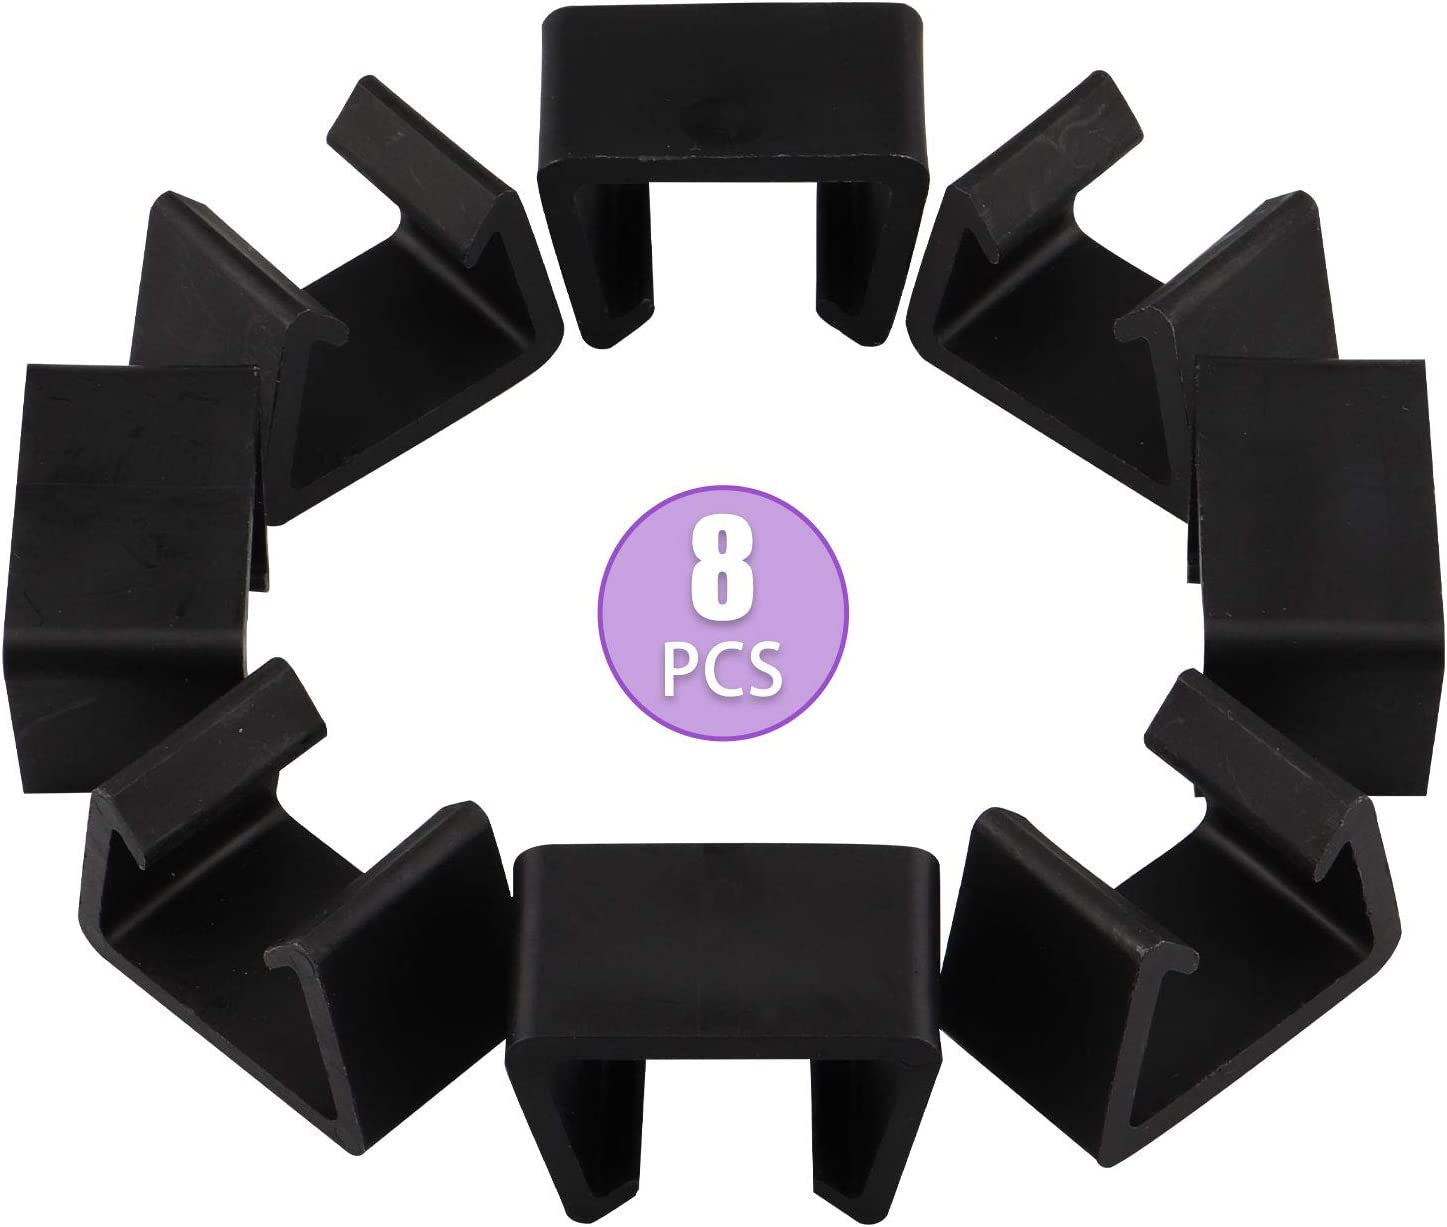 Outdoor Patio Wicker Furniture Clips 8 PCS Sectional Sofa Rattan Chair Fastener Connect Clips, Garden Sectional Sofa Couch Alignment Connectors Fix Clamps(Medium)